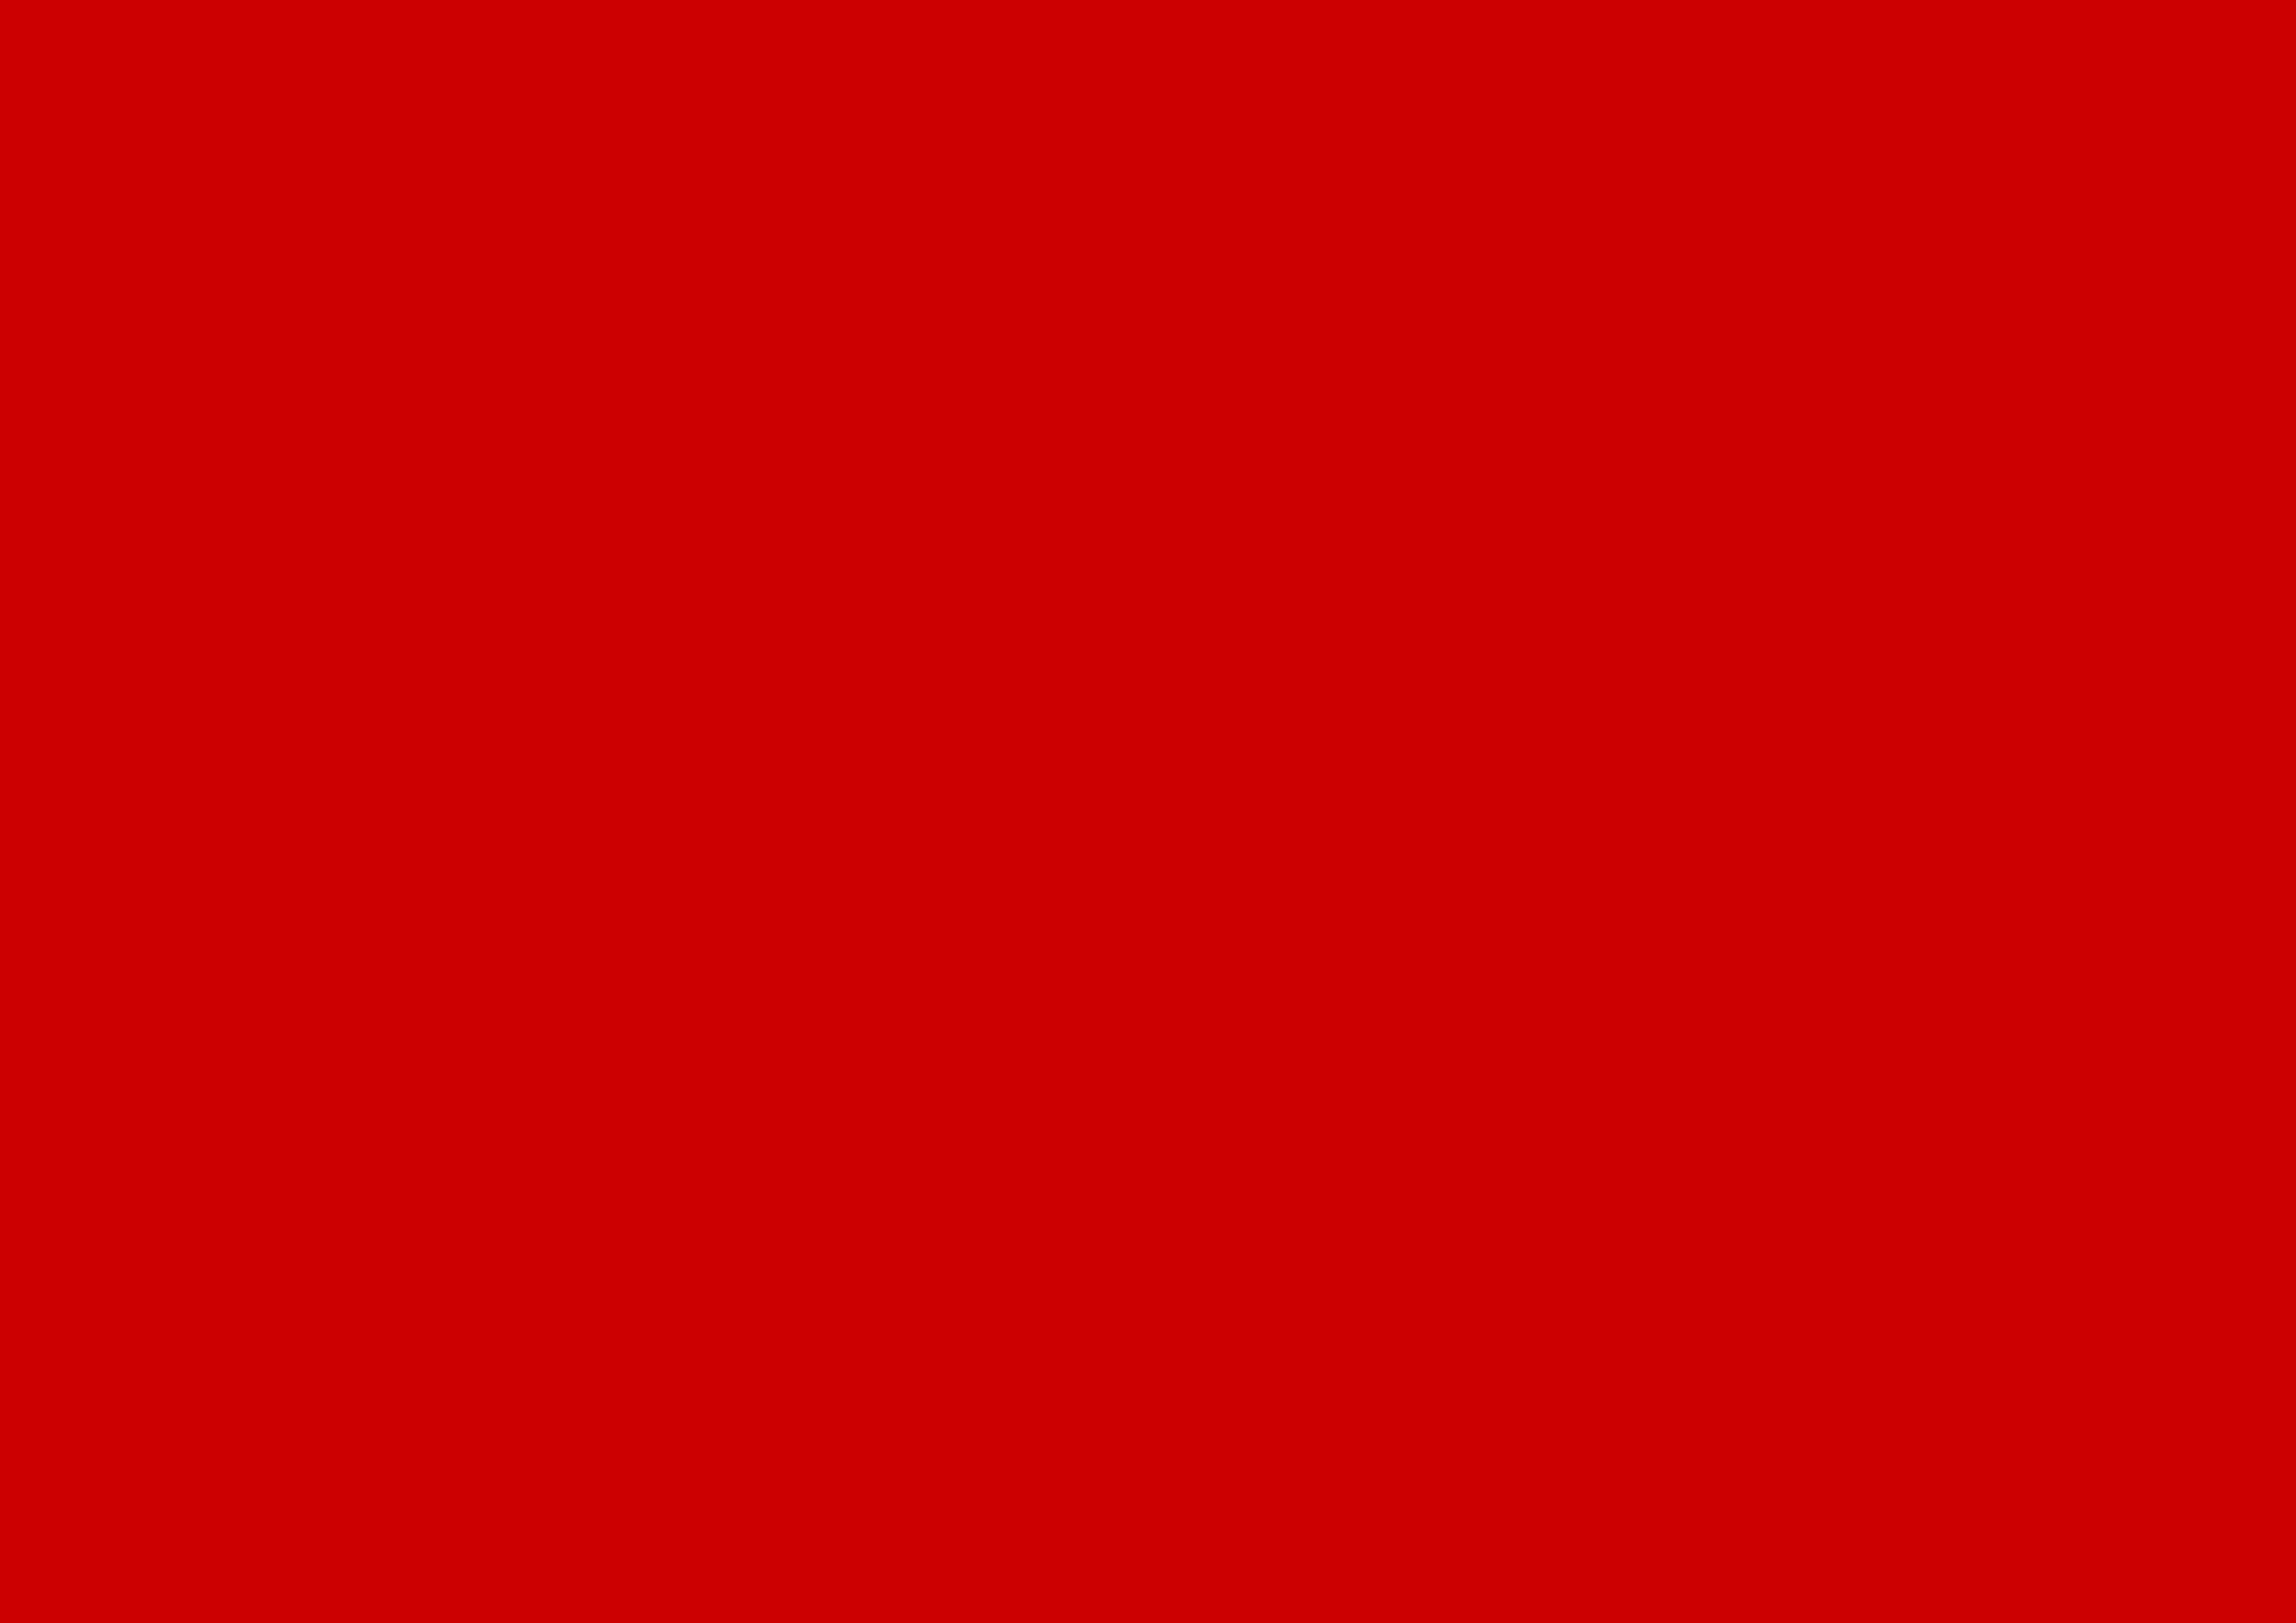 3508x2480 Boston University Red Solid Color Background